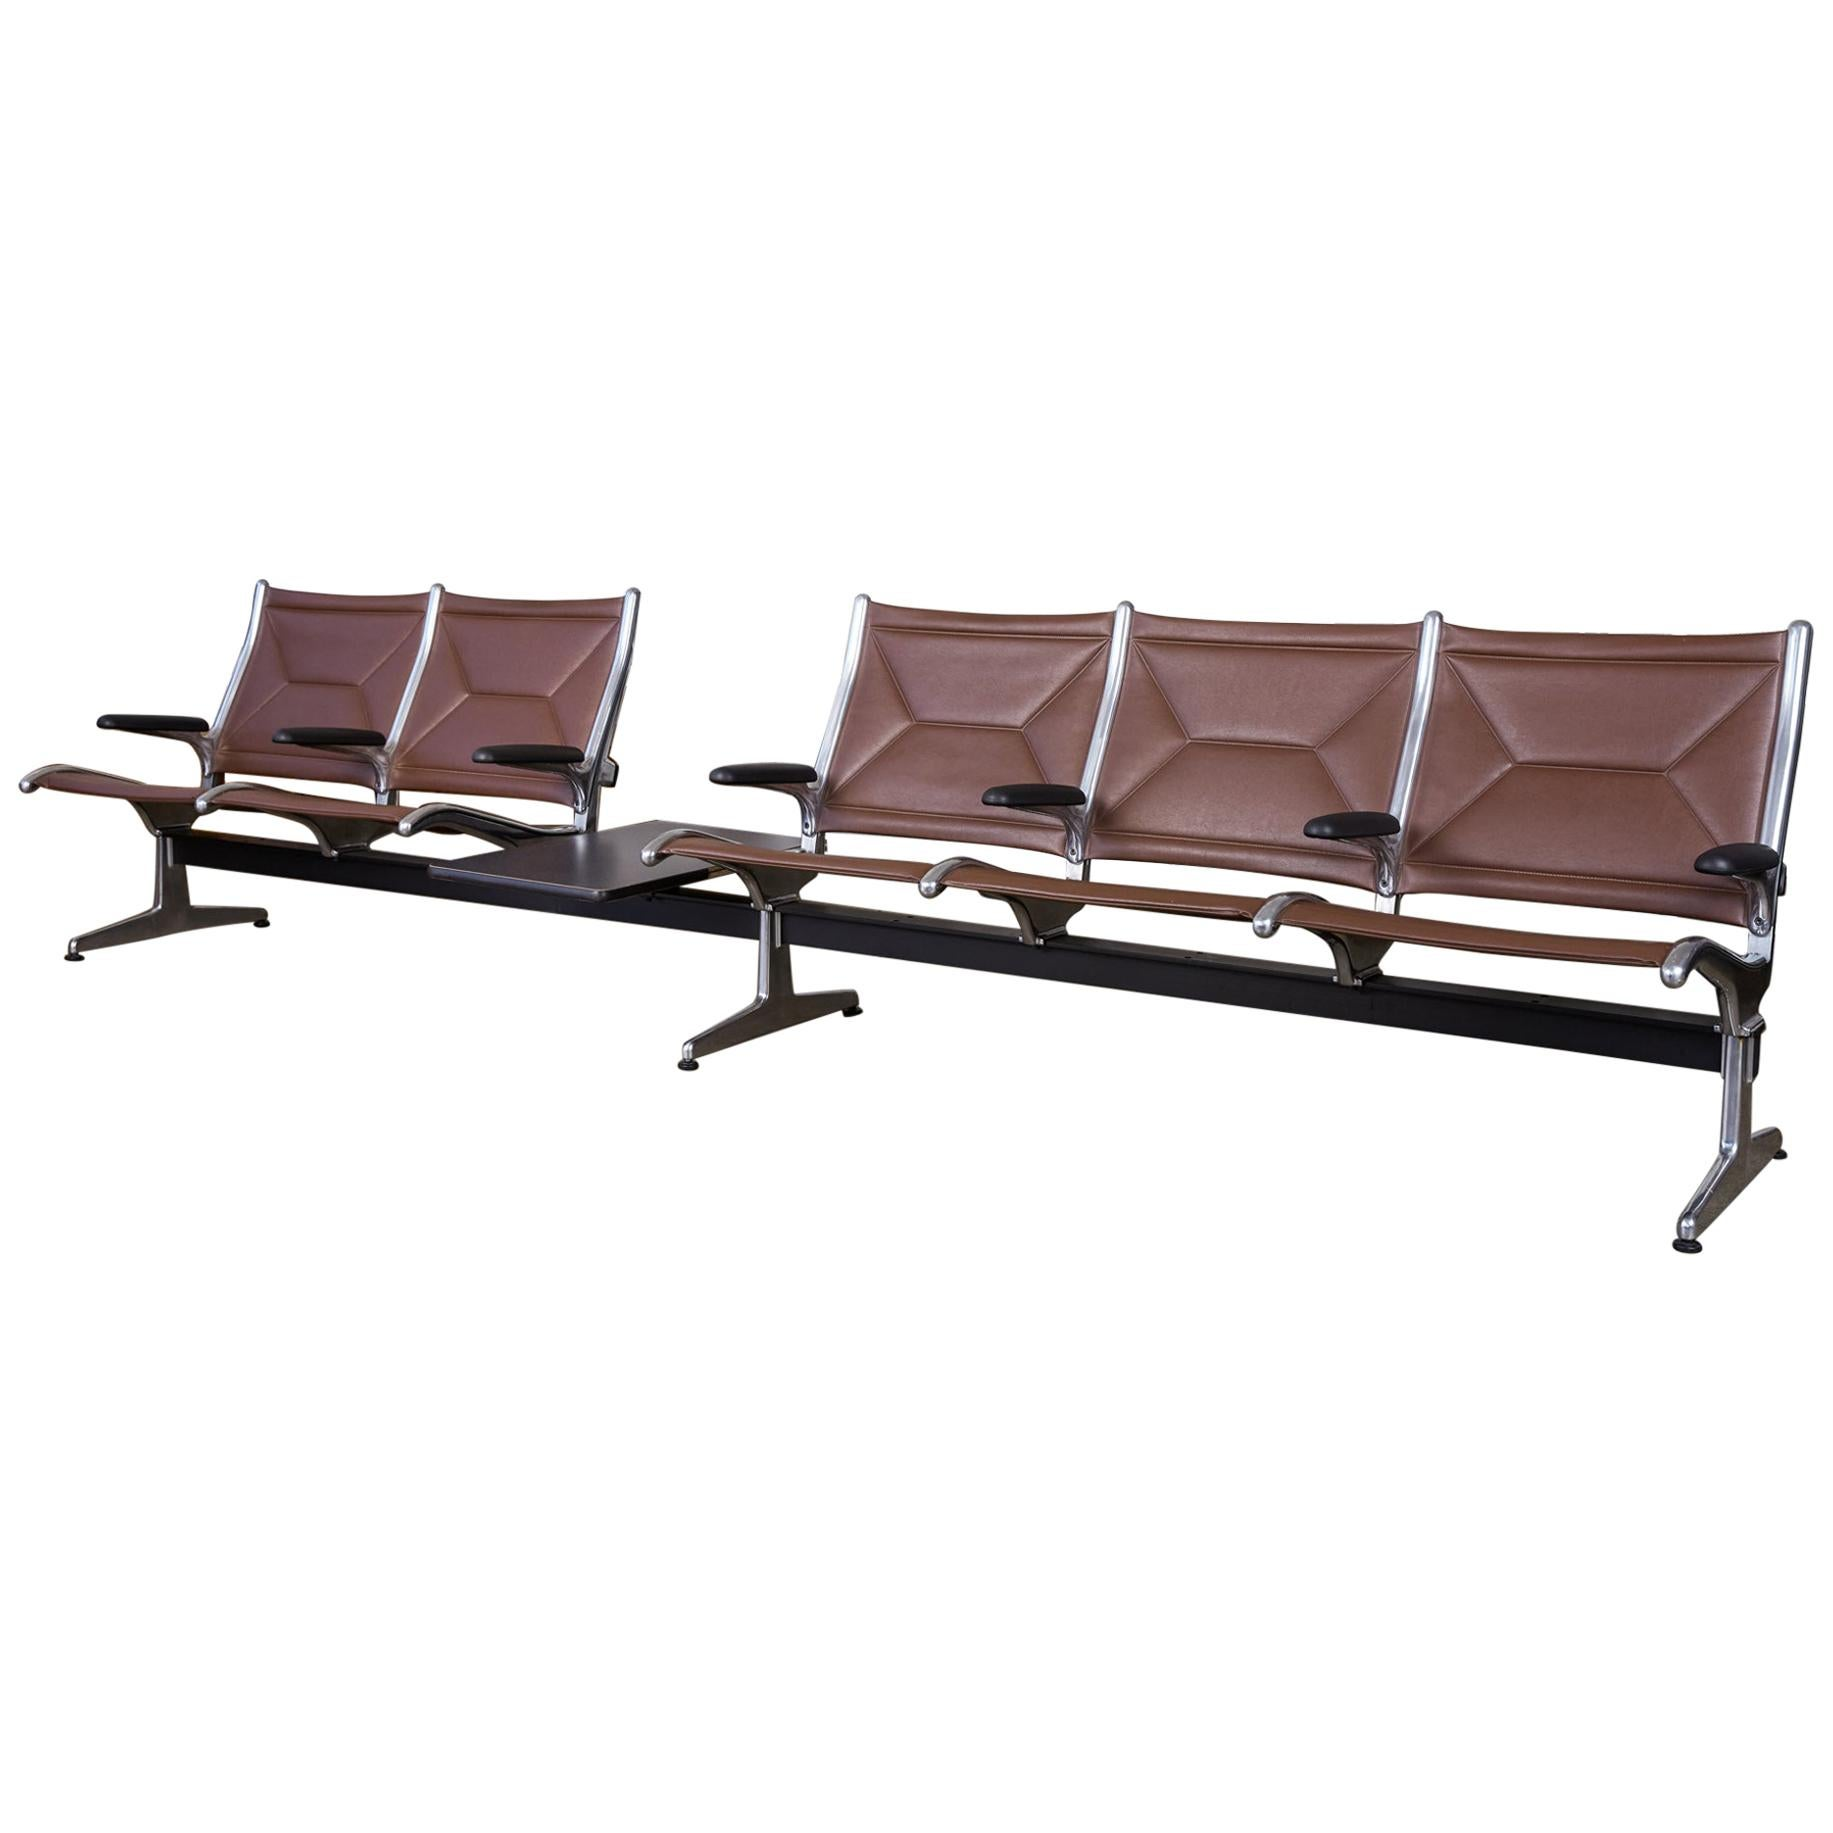 Eames for Herman Miller Seating System in Brown